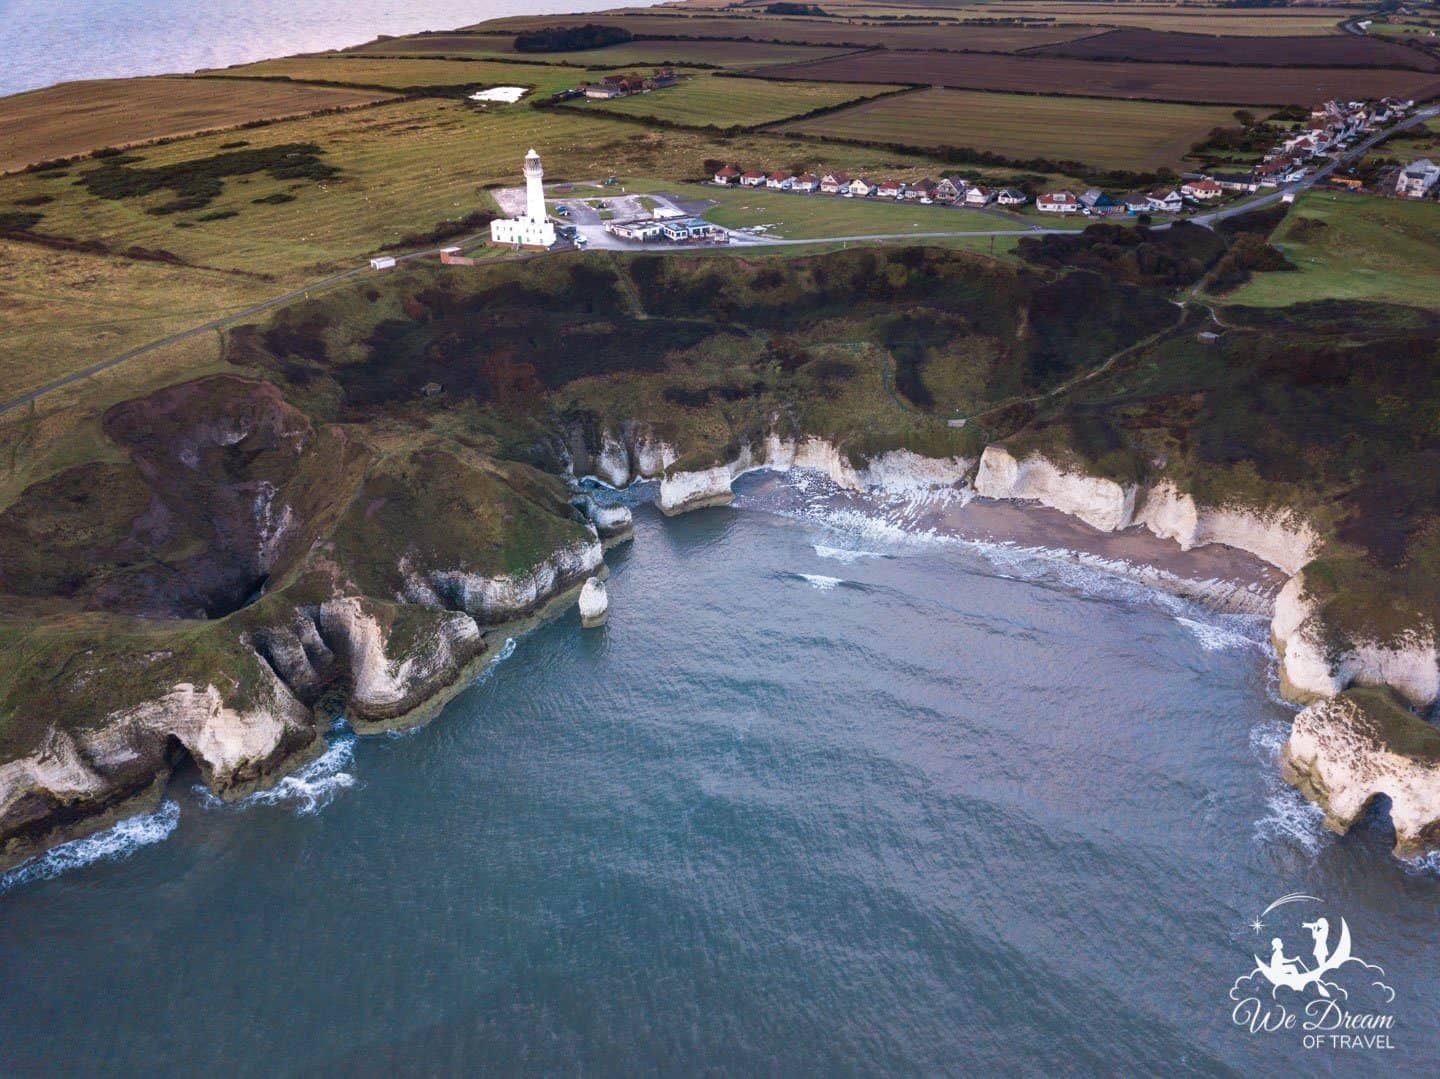 Drone photo of the Flamborough Head Lighthouse